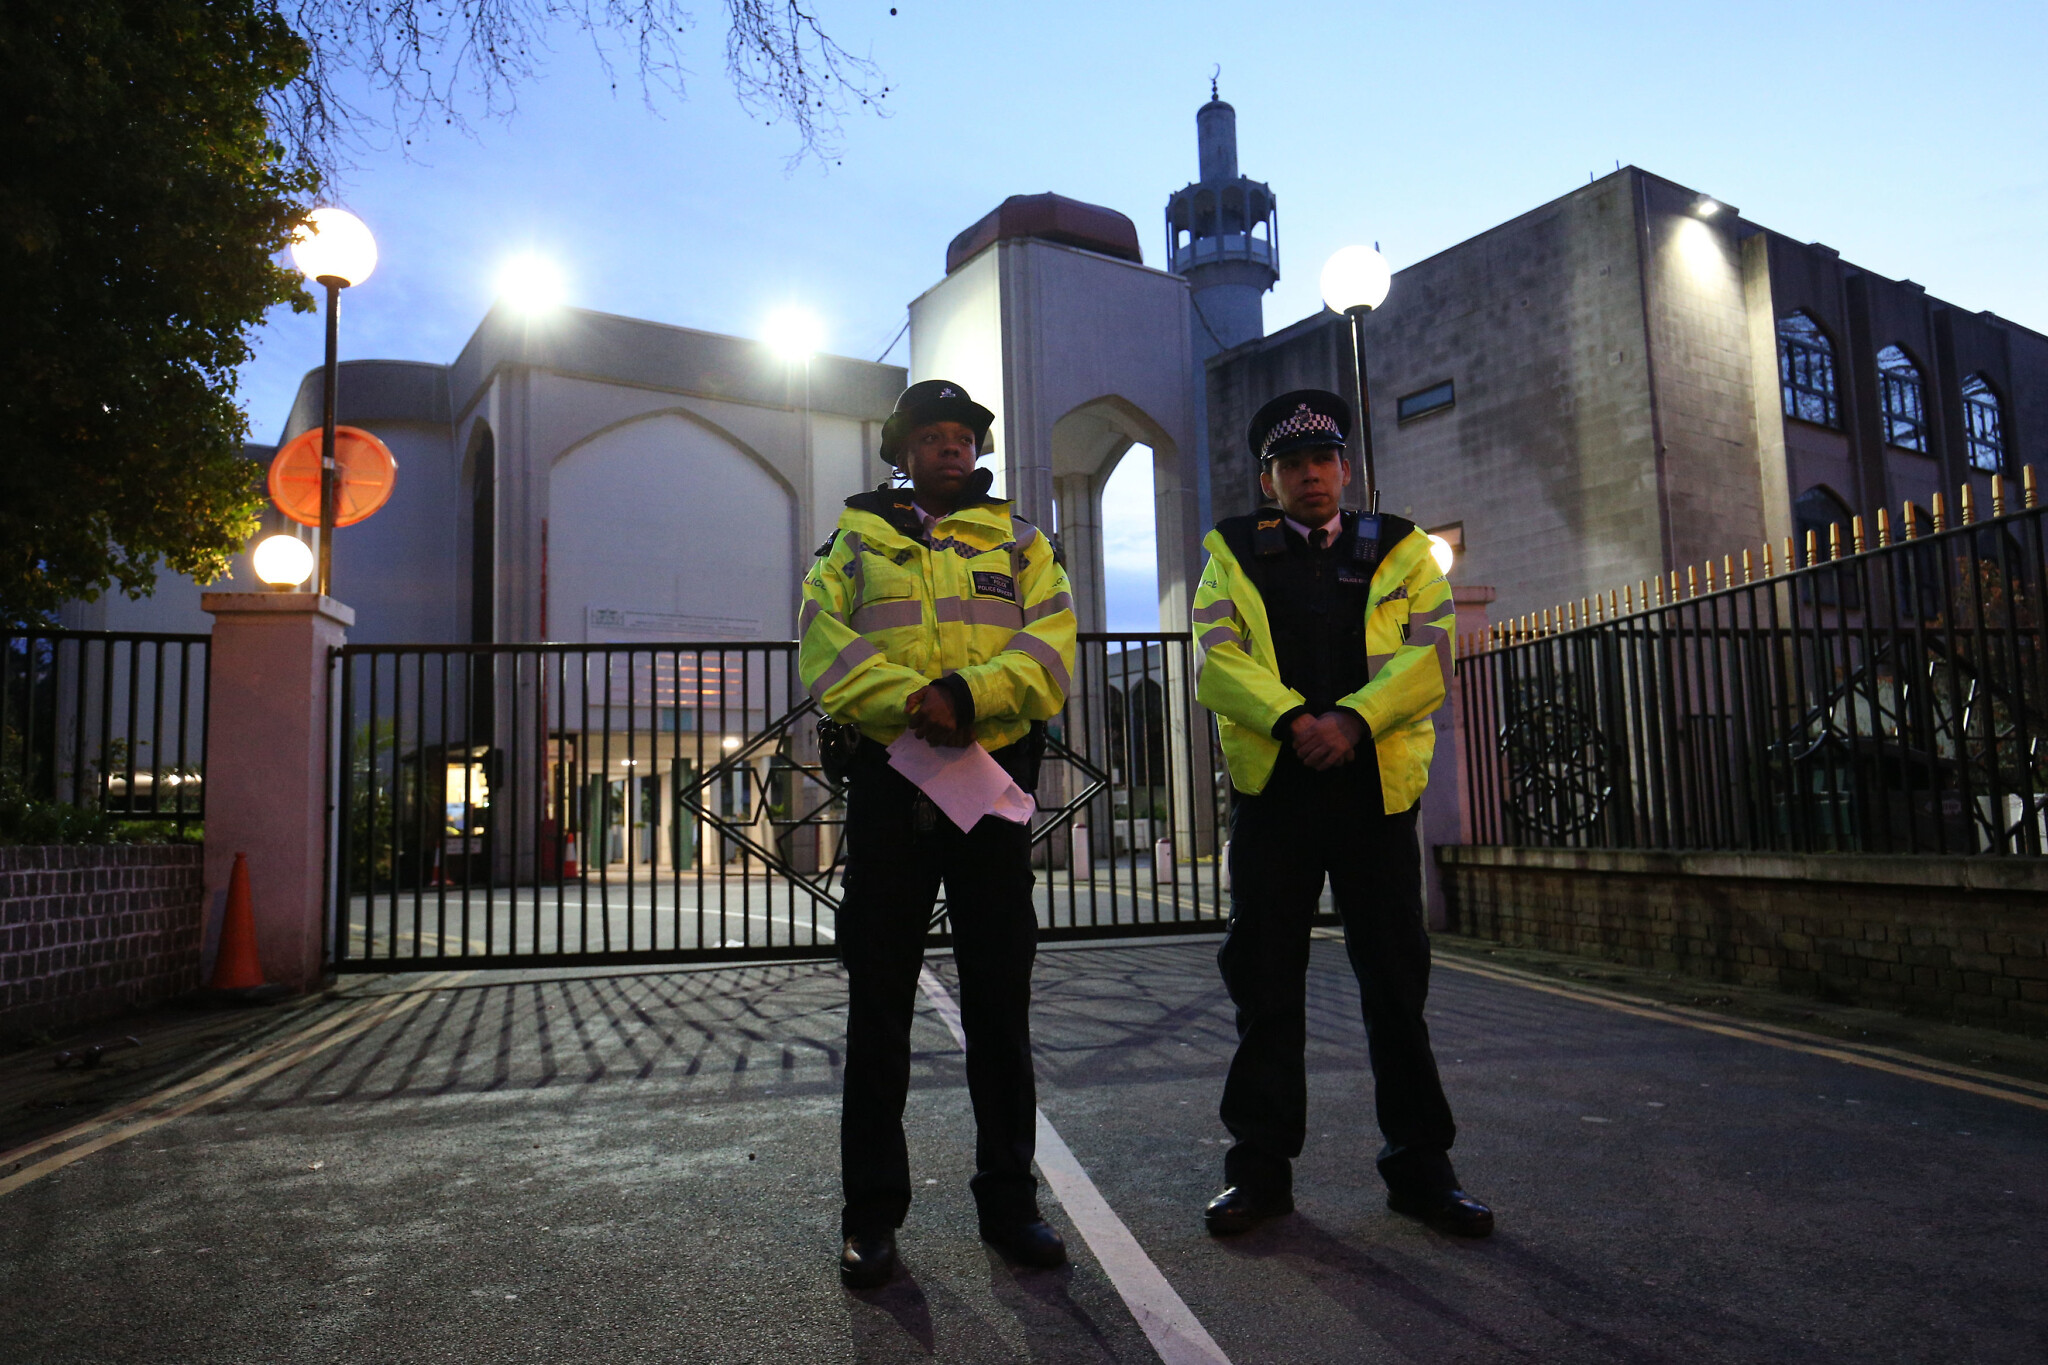 Muslim worshipper stabbed in neck at central London mosque